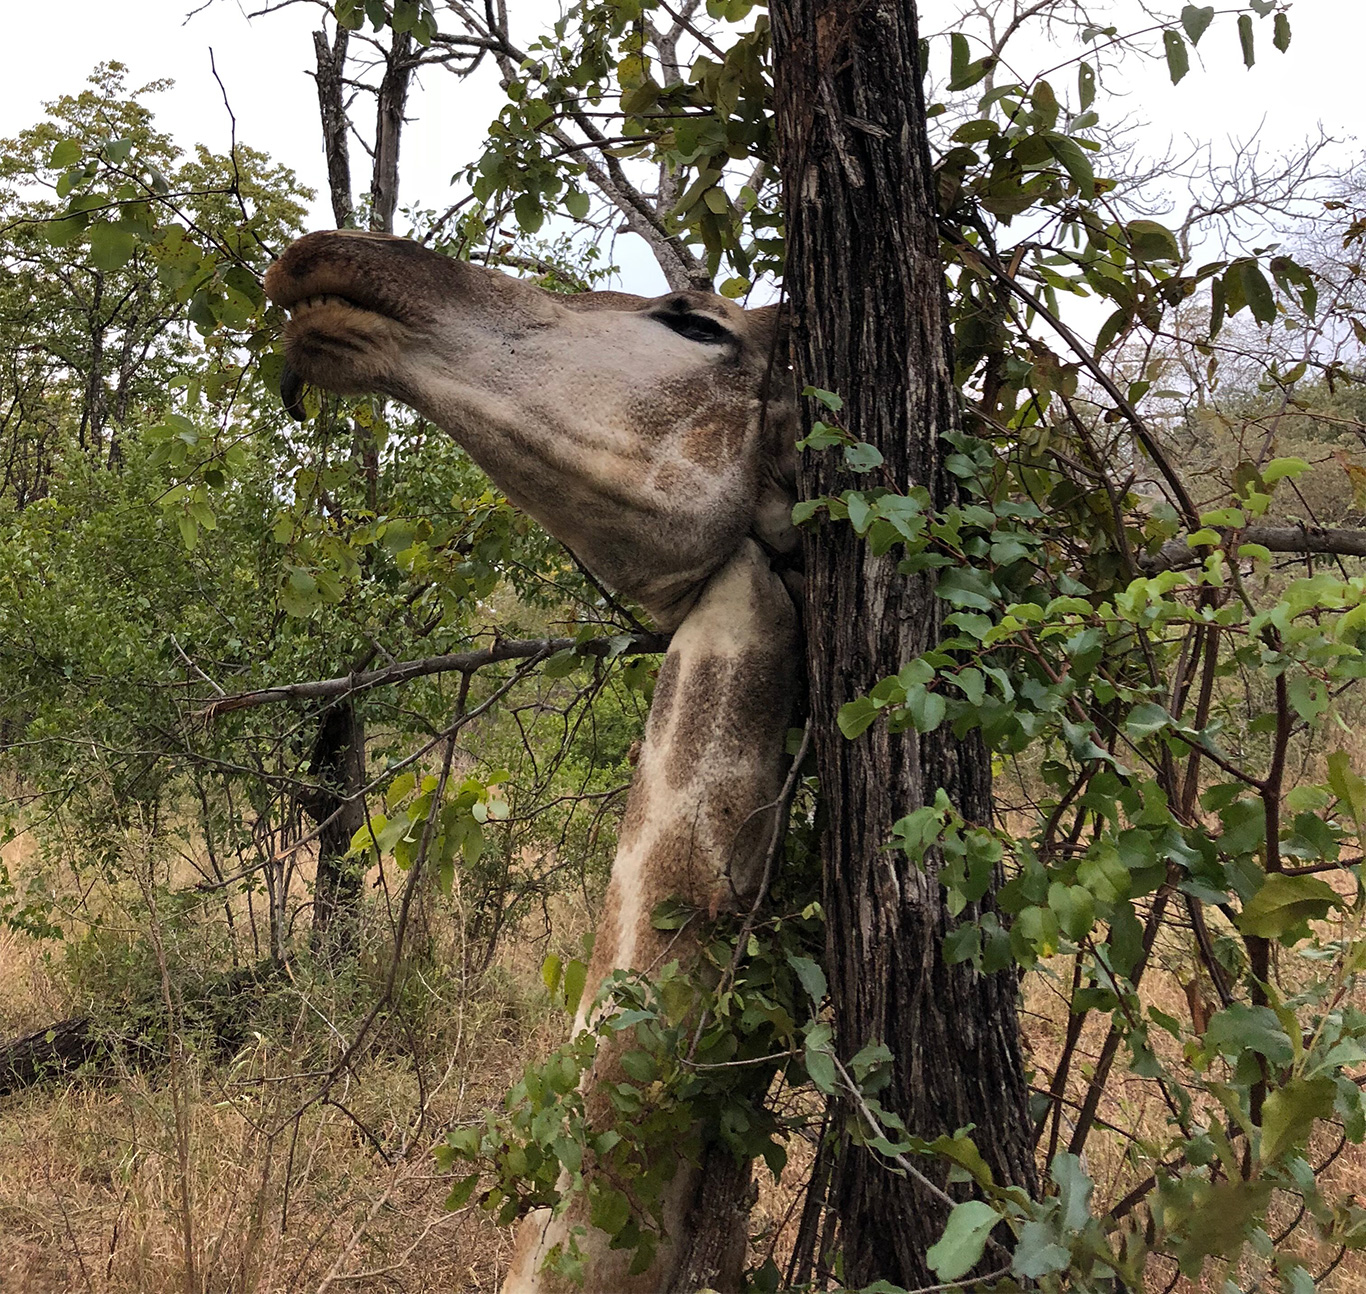 WICKED SNARES kill giraffes for food and tourist trinkets! 2